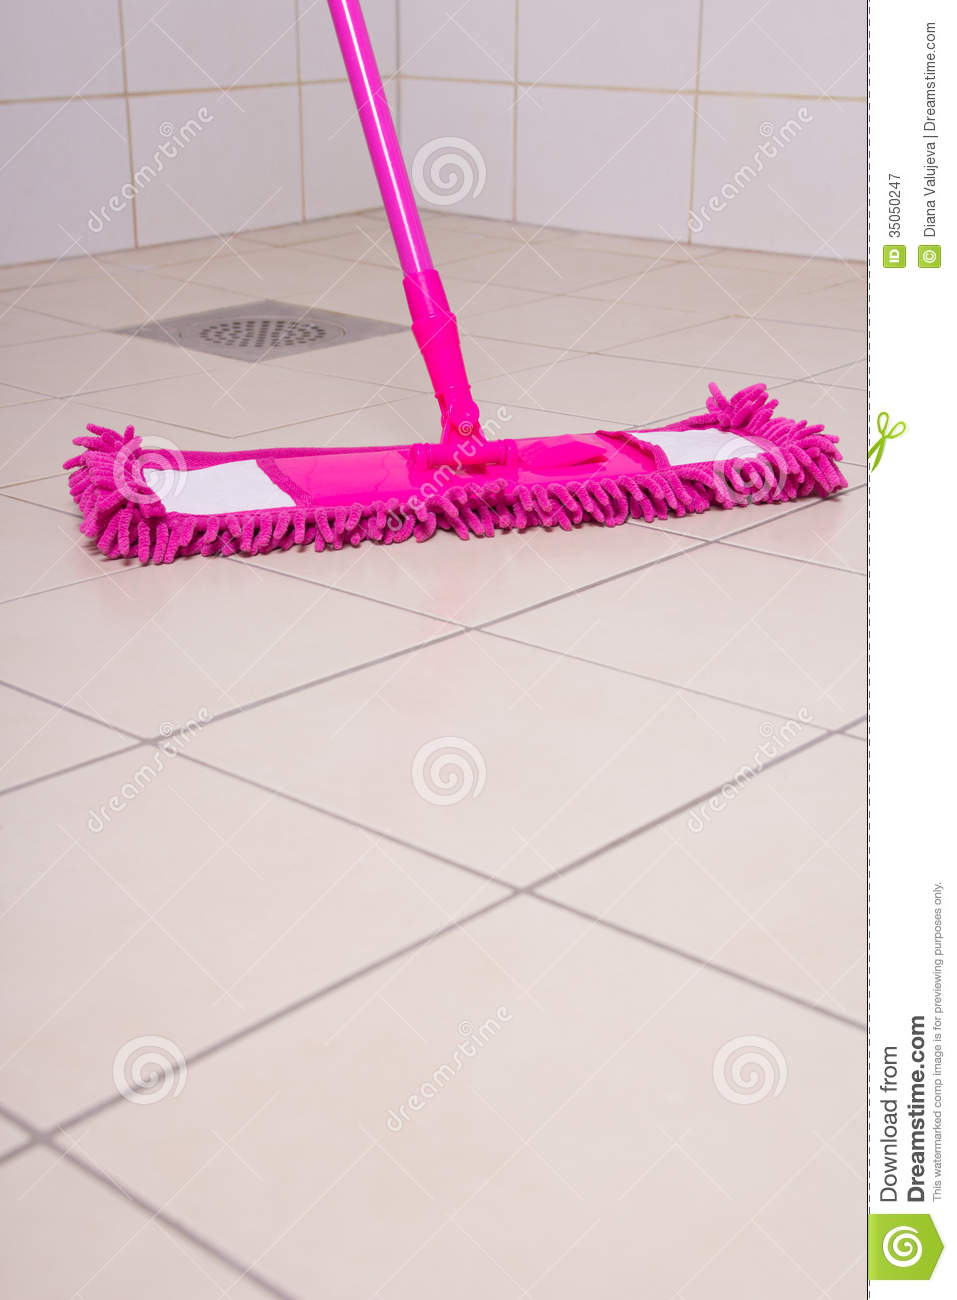 Washing Of Tile Floors By Pink Mop Stock Image - Image ...